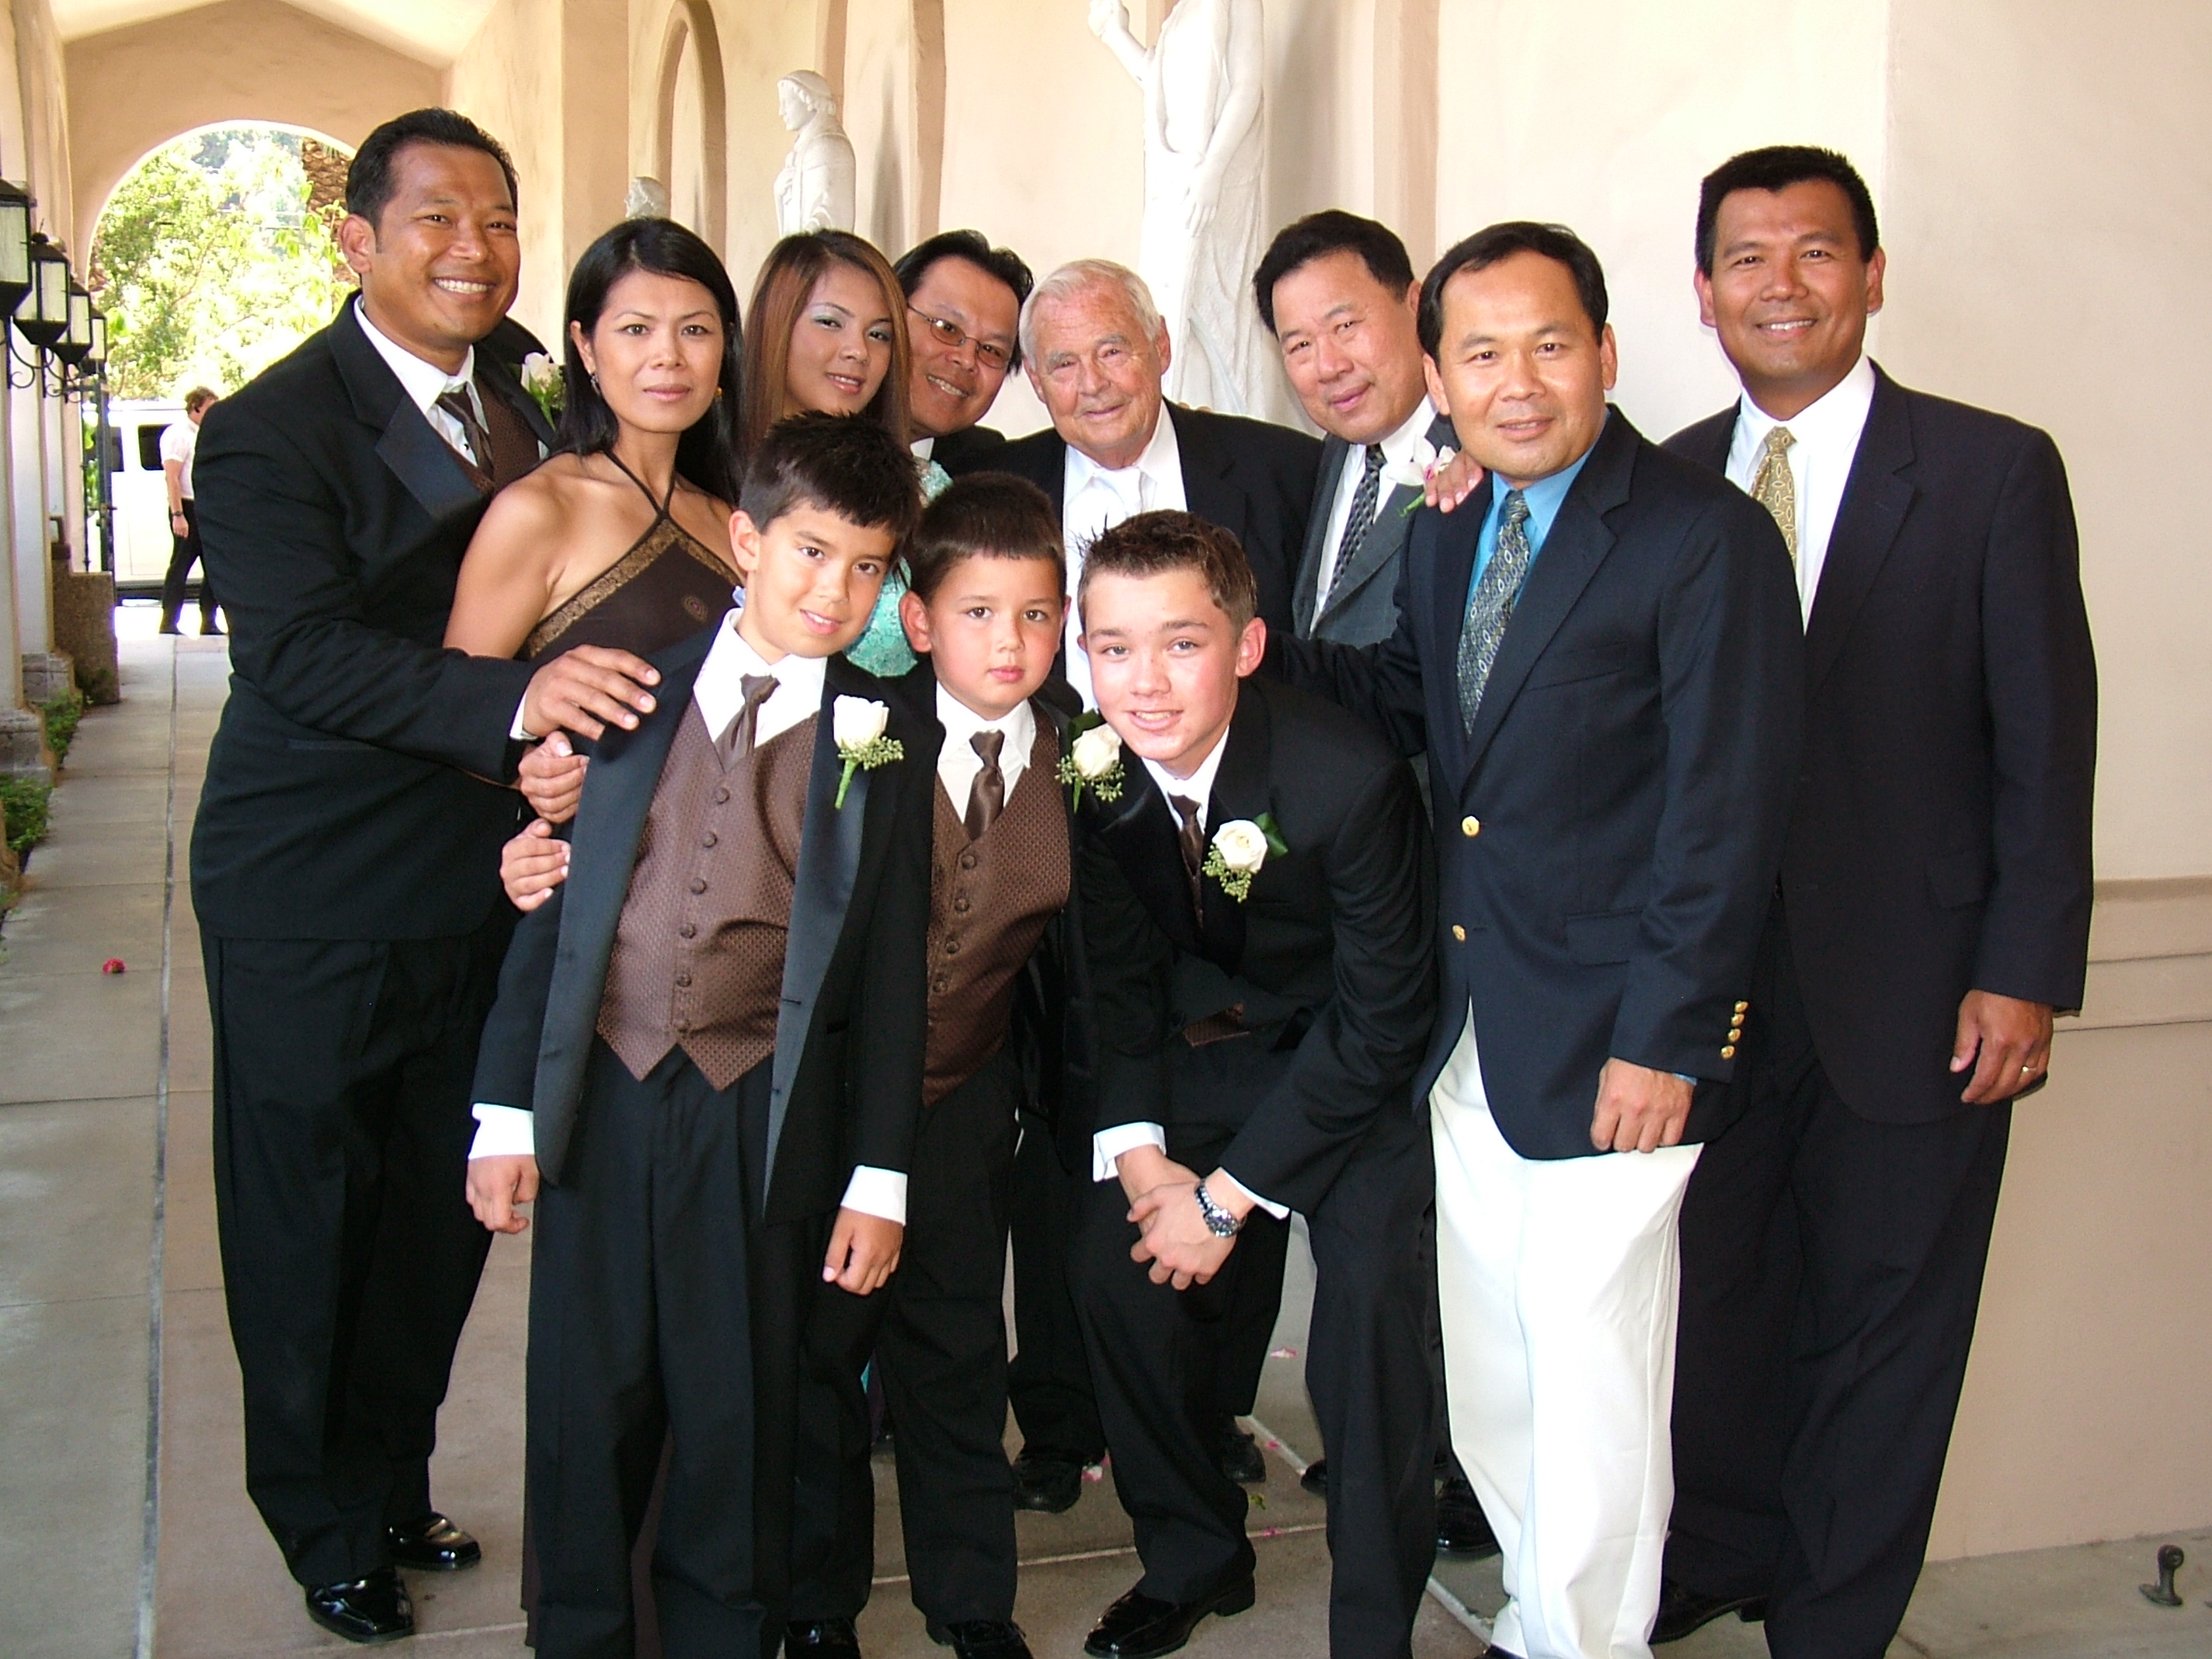 Theary Seng, brothers and Wally at Donald and Heidi Hok's wedding (Southern California)